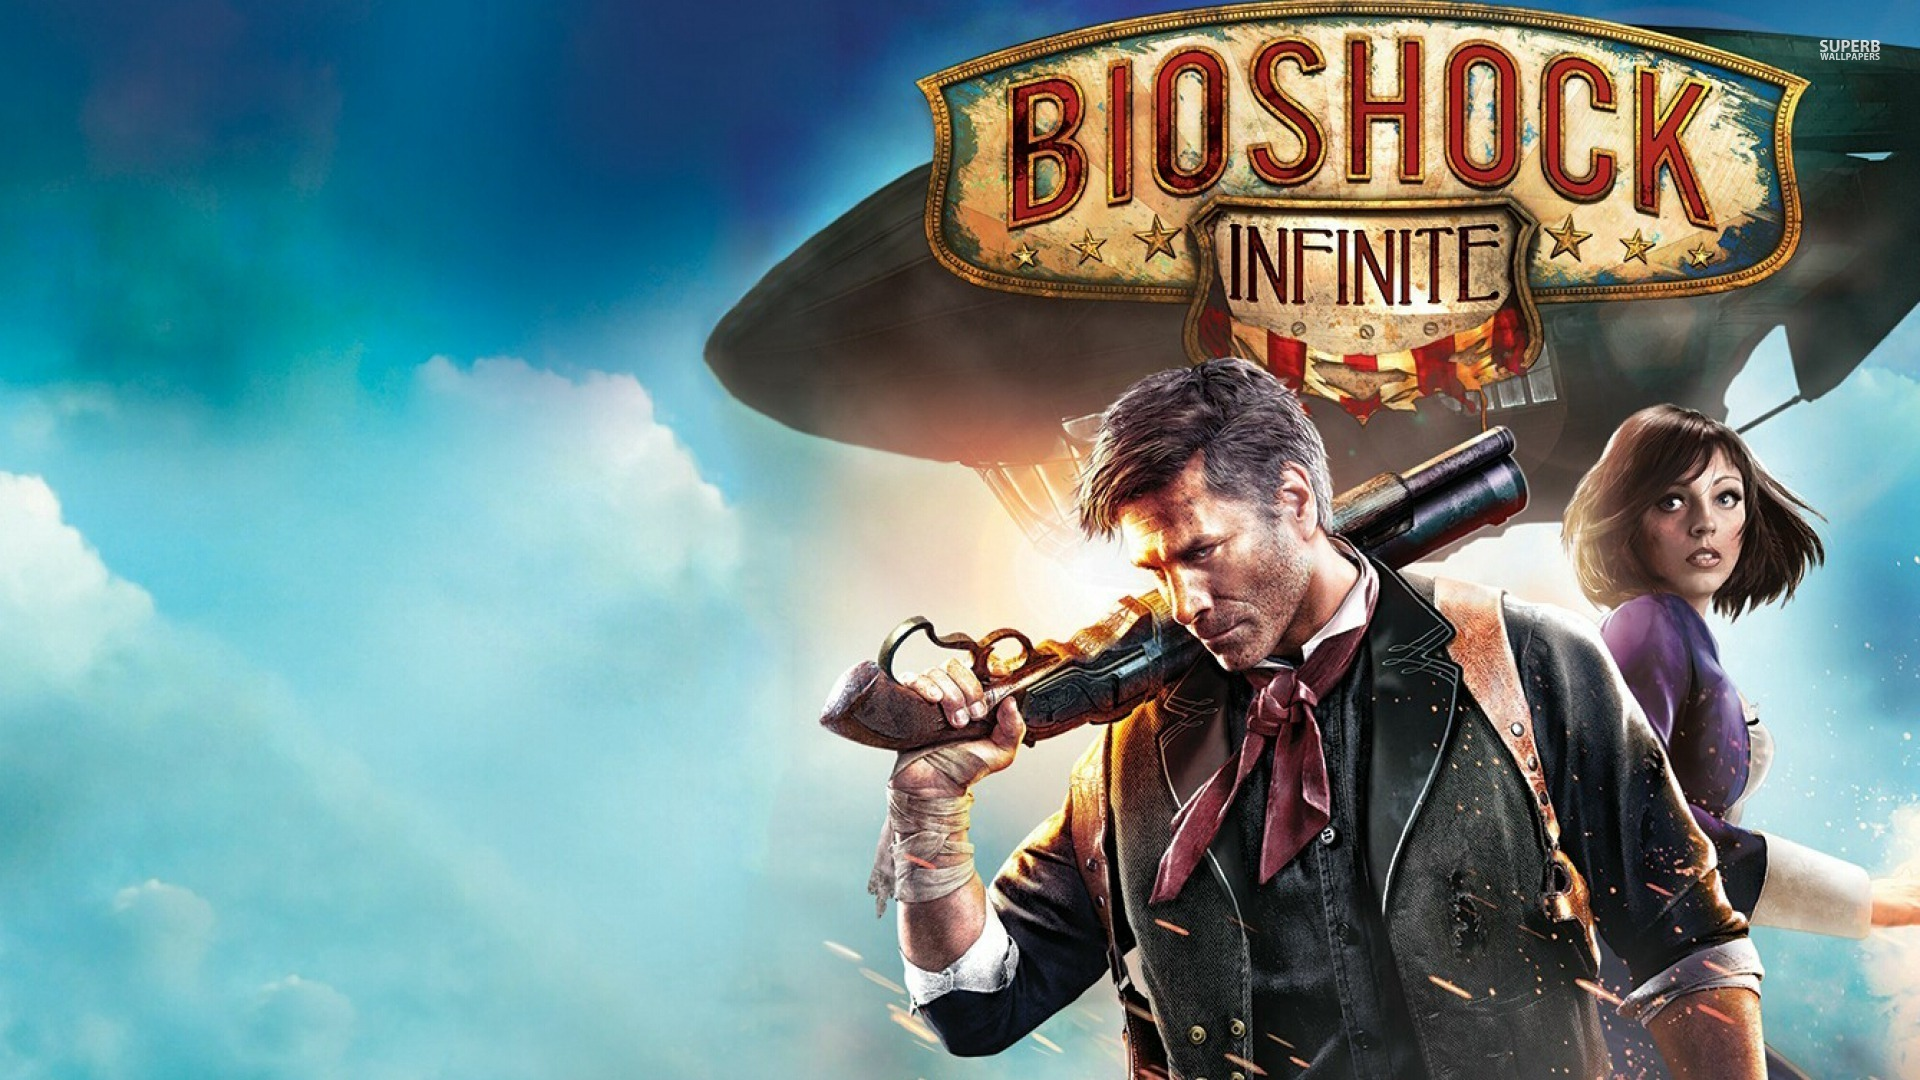 BioShock Infinite (Steam KEY)RU+Подарок